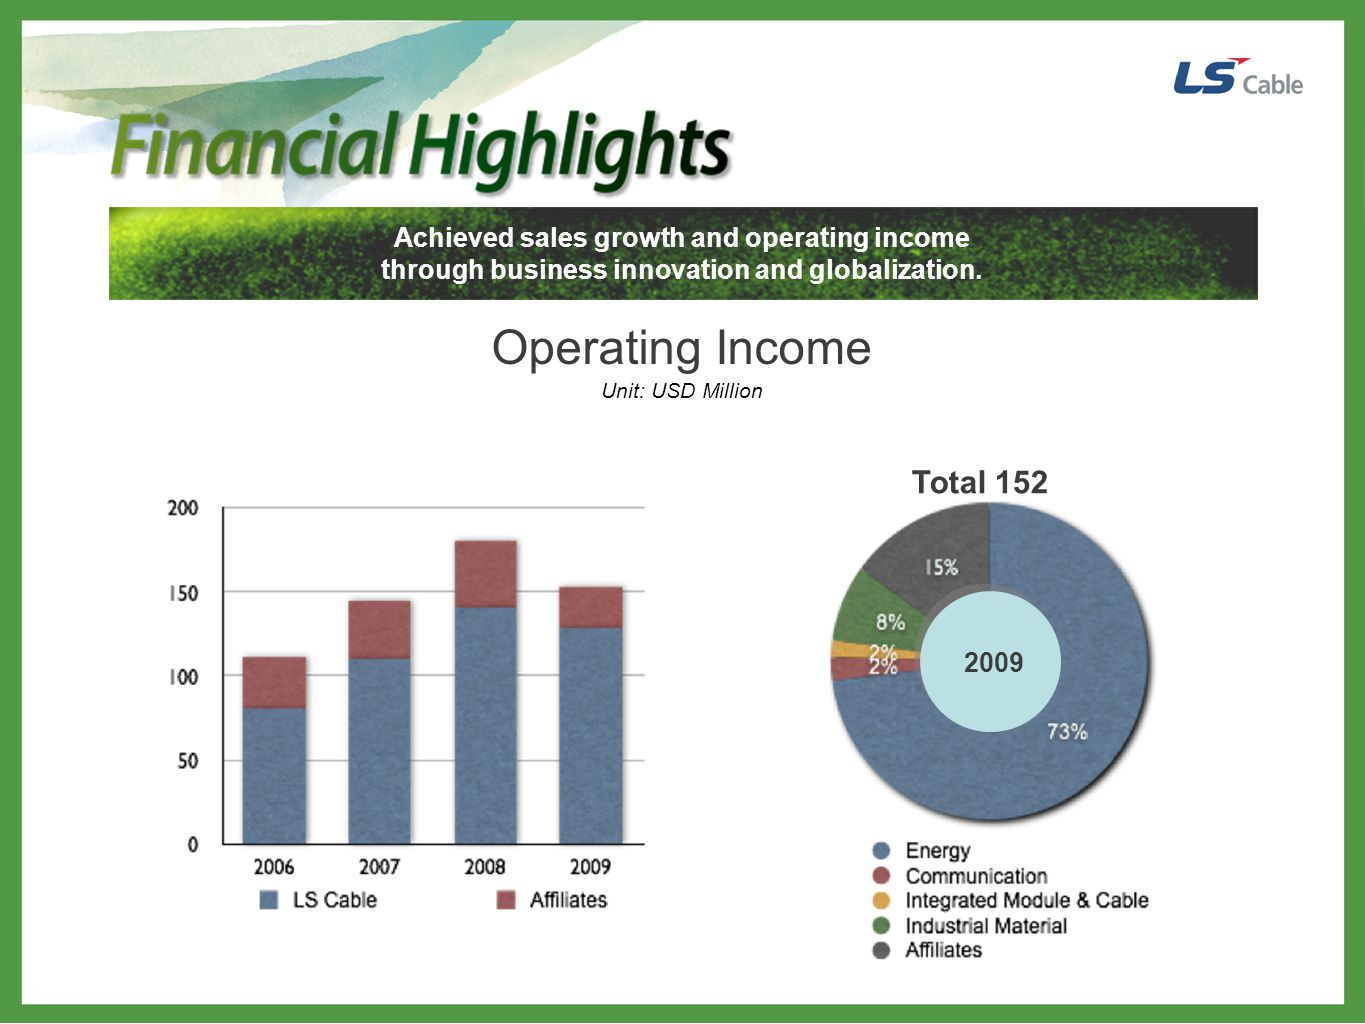 Operating Income Total 152 Achieved sales growth and operating income